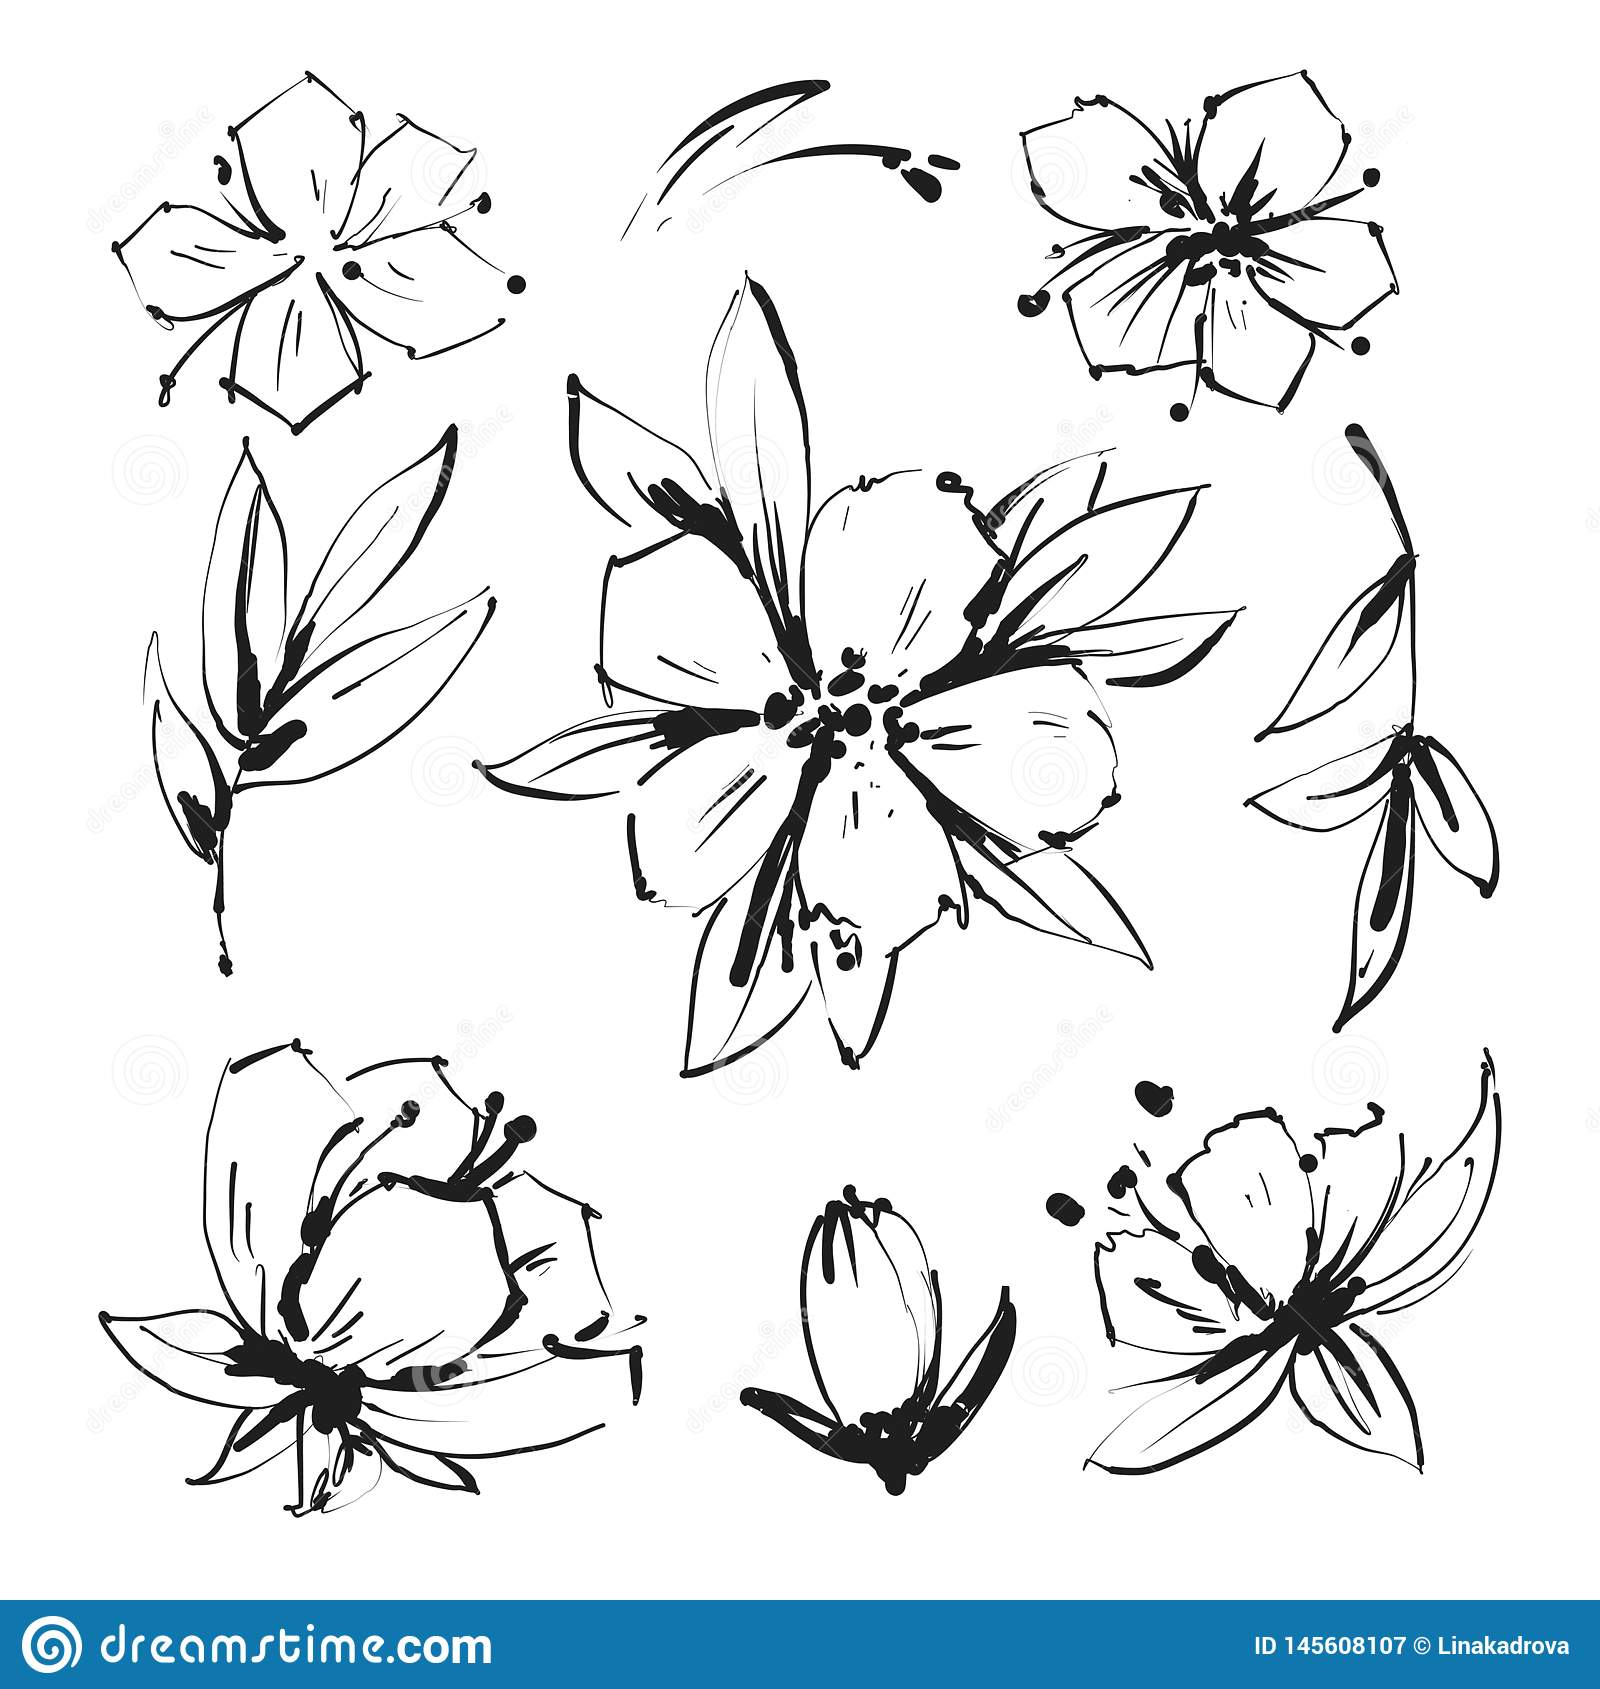 Sketch Floral Botany Collection. Magnolia flower drawings. Black and white with line art on white backgrounds. Hand